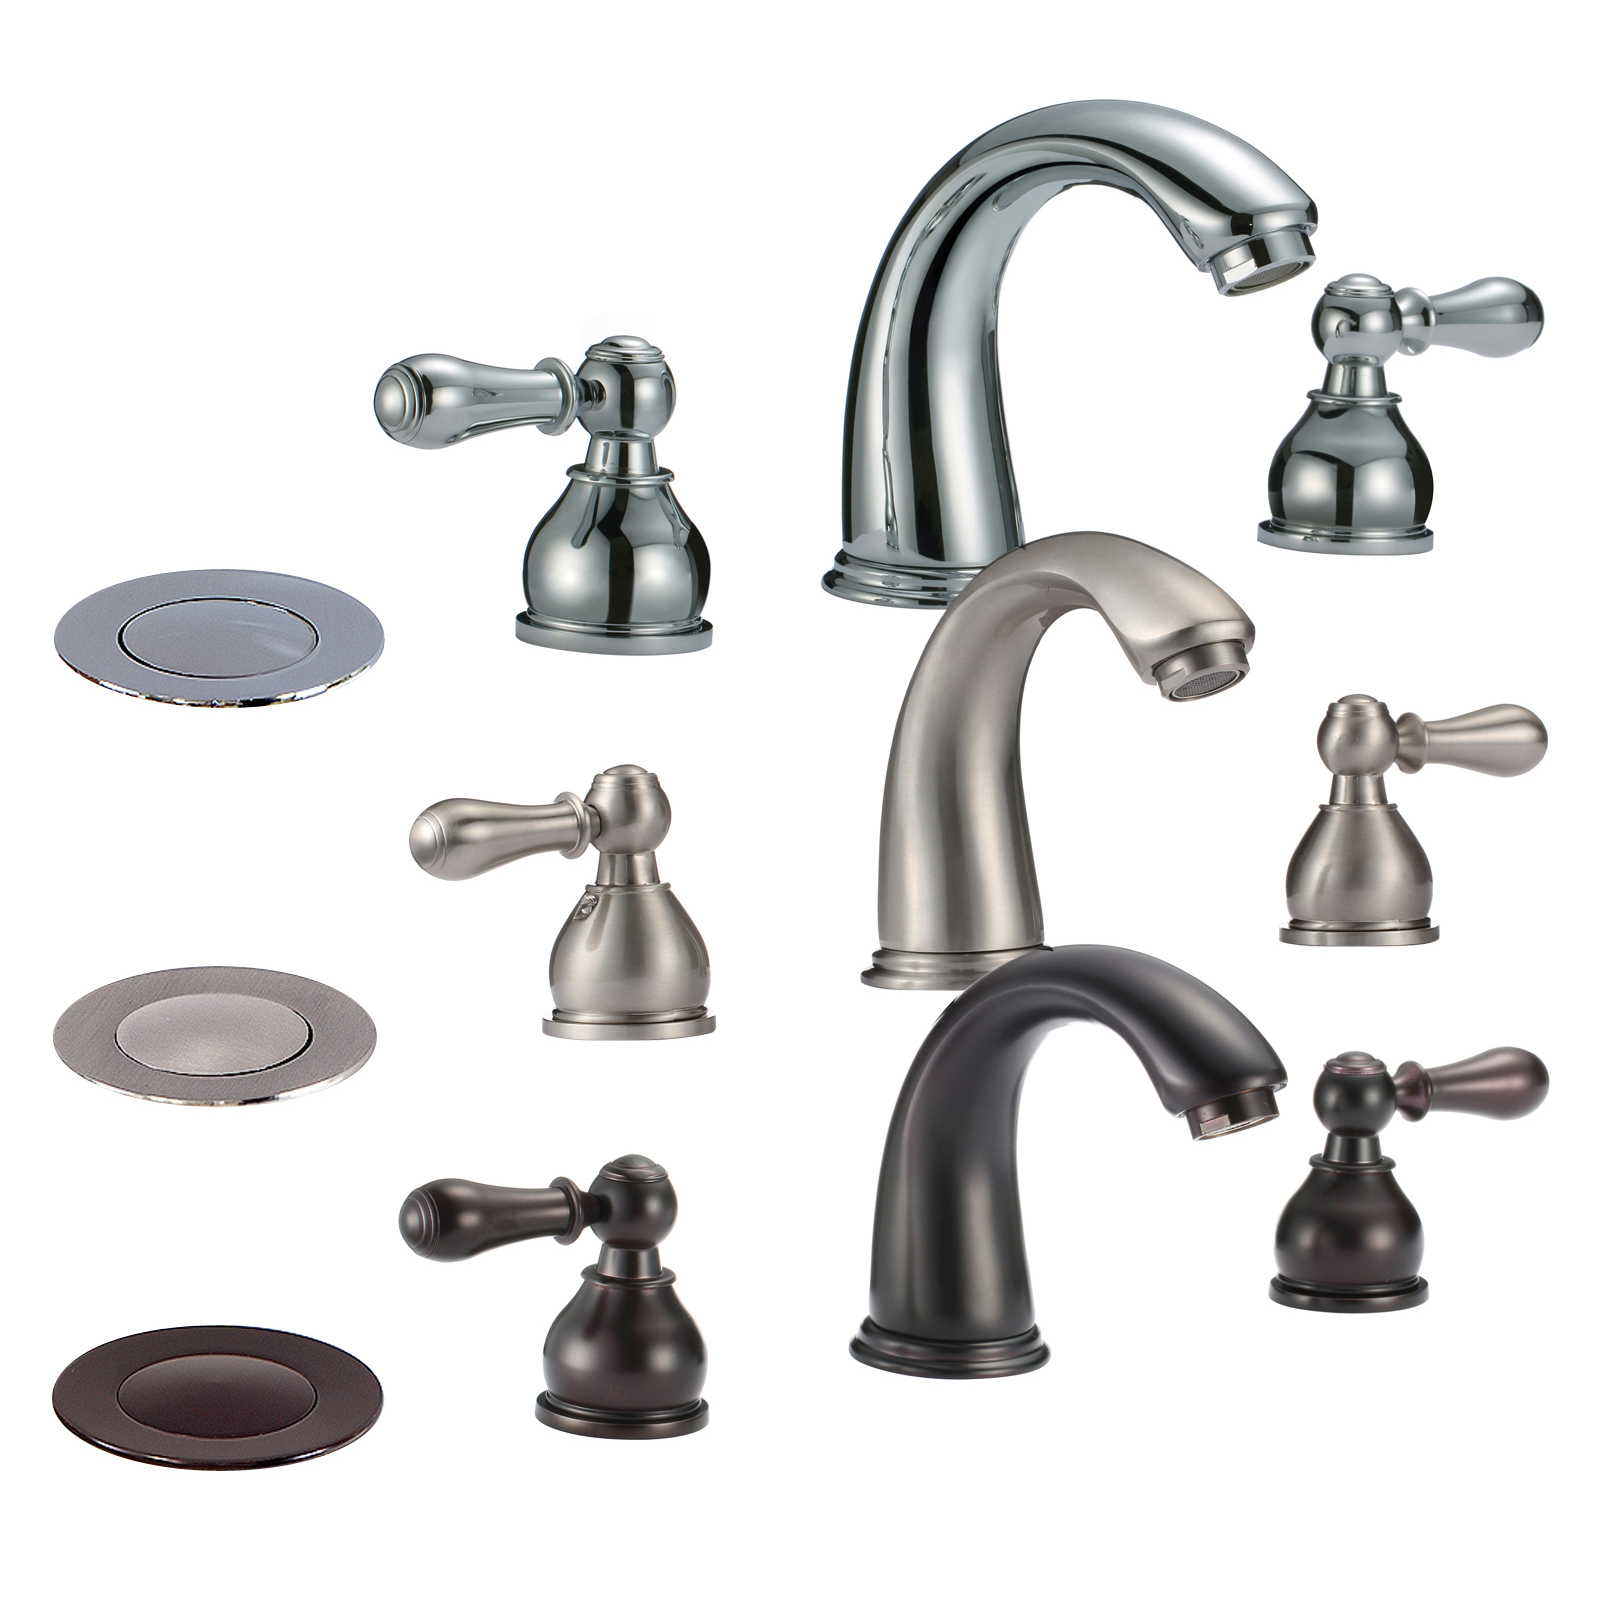 7 Faucet Finishes For Fabulous Bathrooms: FREUER Colletto Collection: Classic Widespread Bathroom